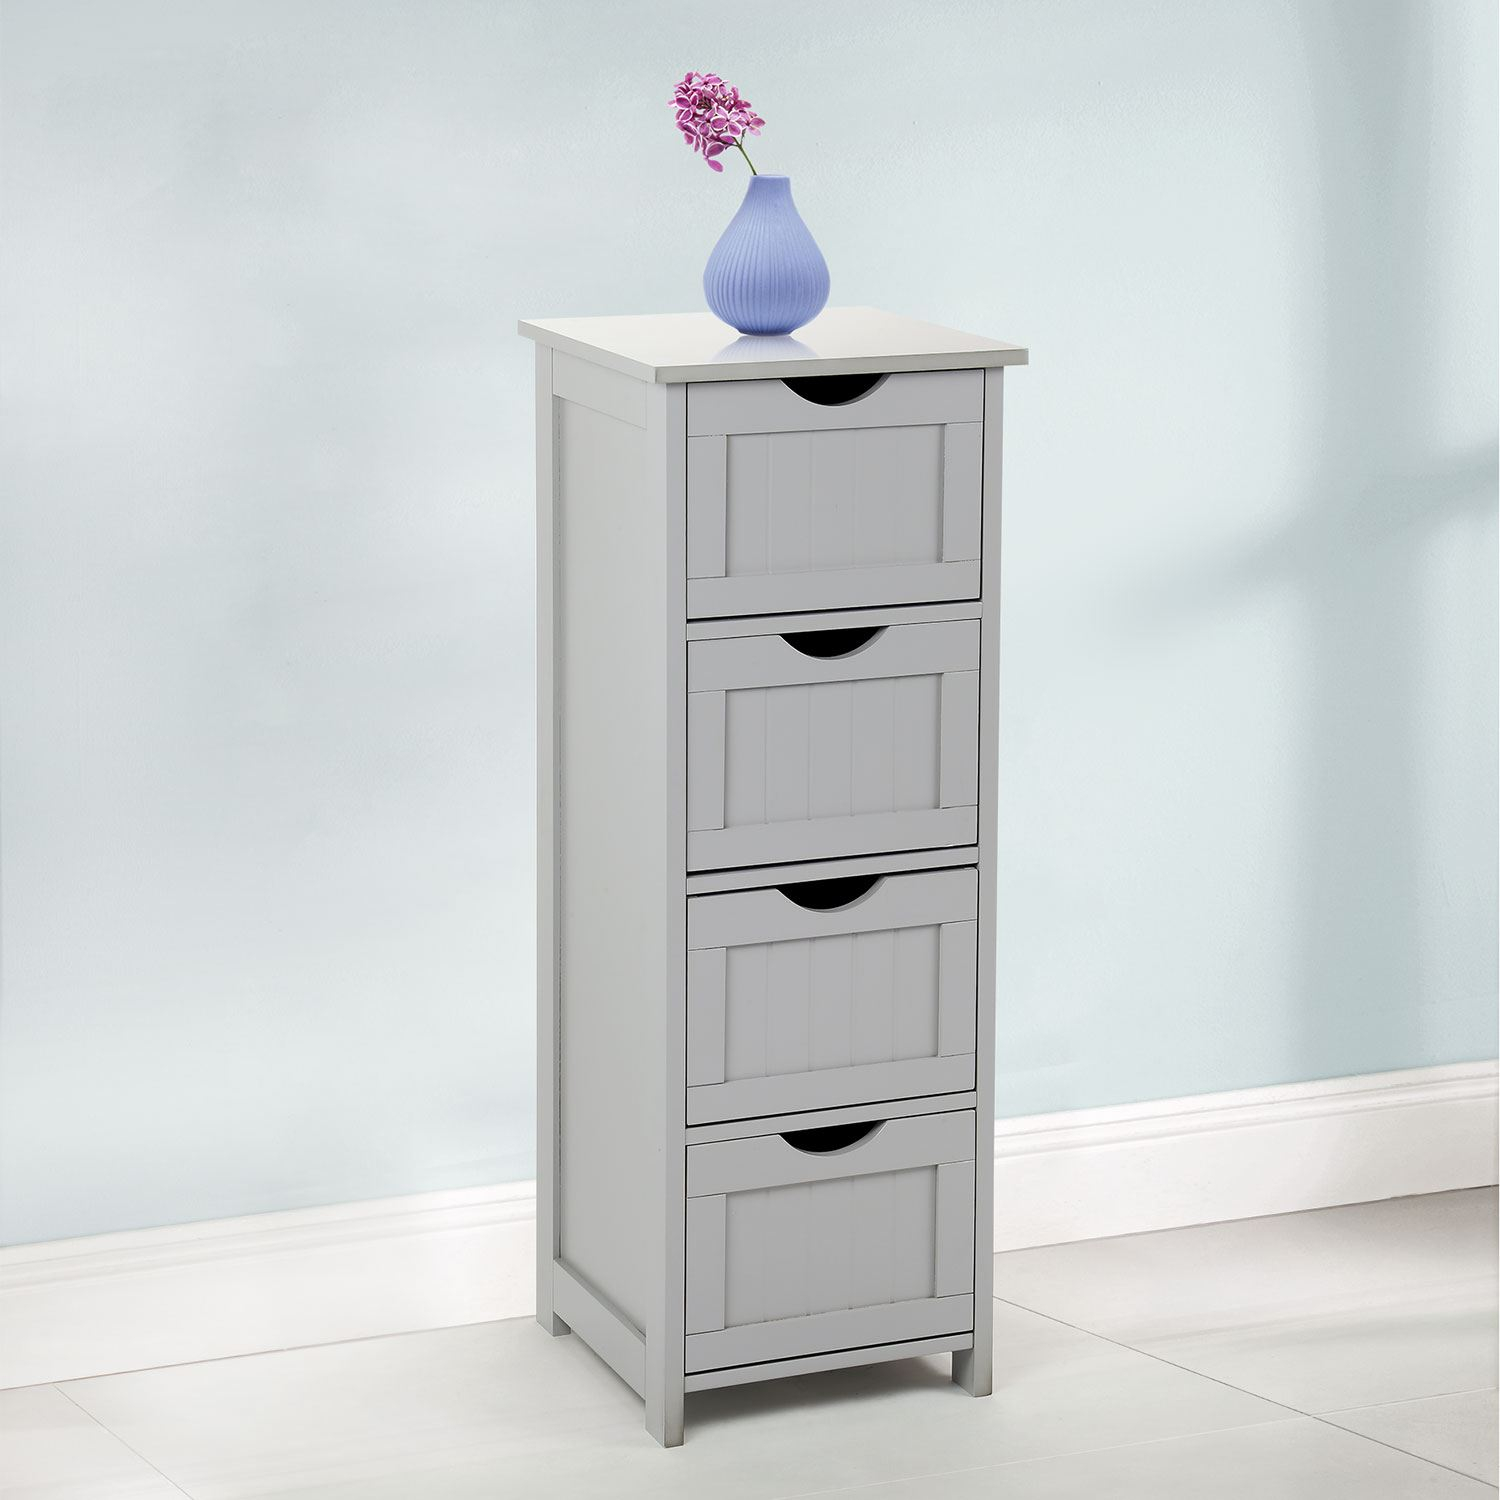 Details About 4 Drawer Slim Chest Tall Bathroom Storage Cabinet Bedroom Hallway Grey intended for dimensions 1500 X 1500